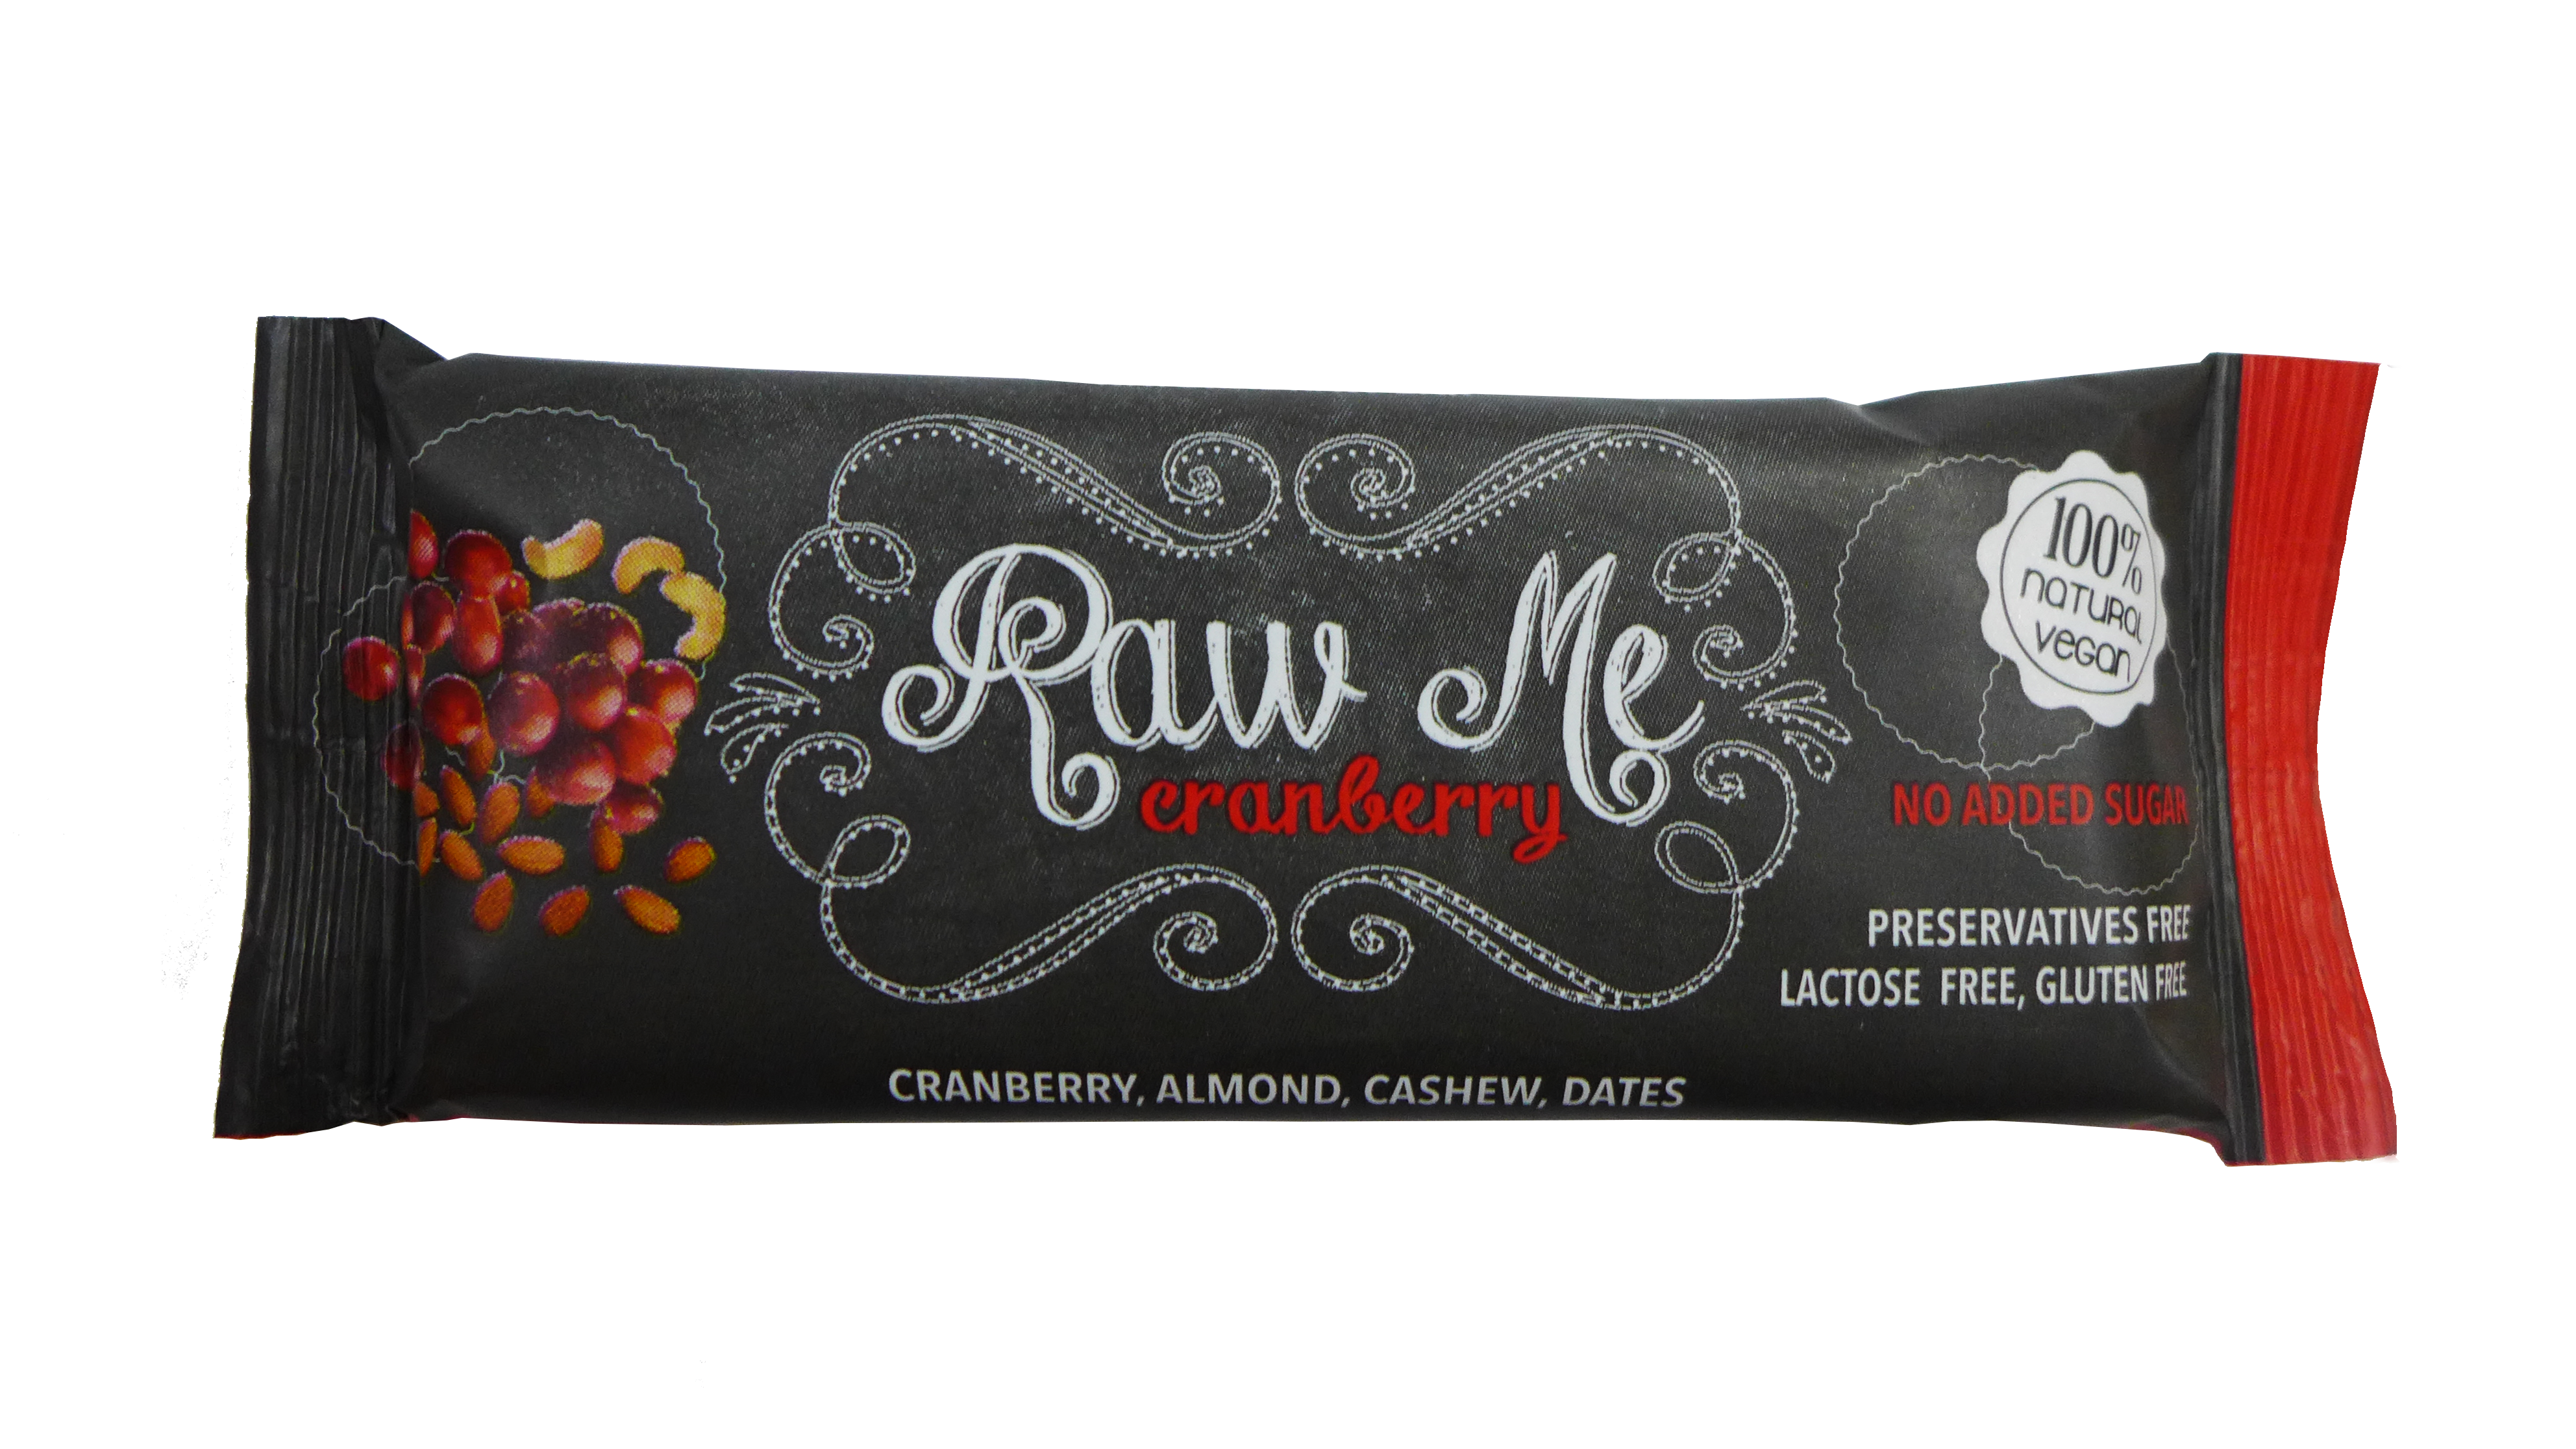 Raw Me cranberry